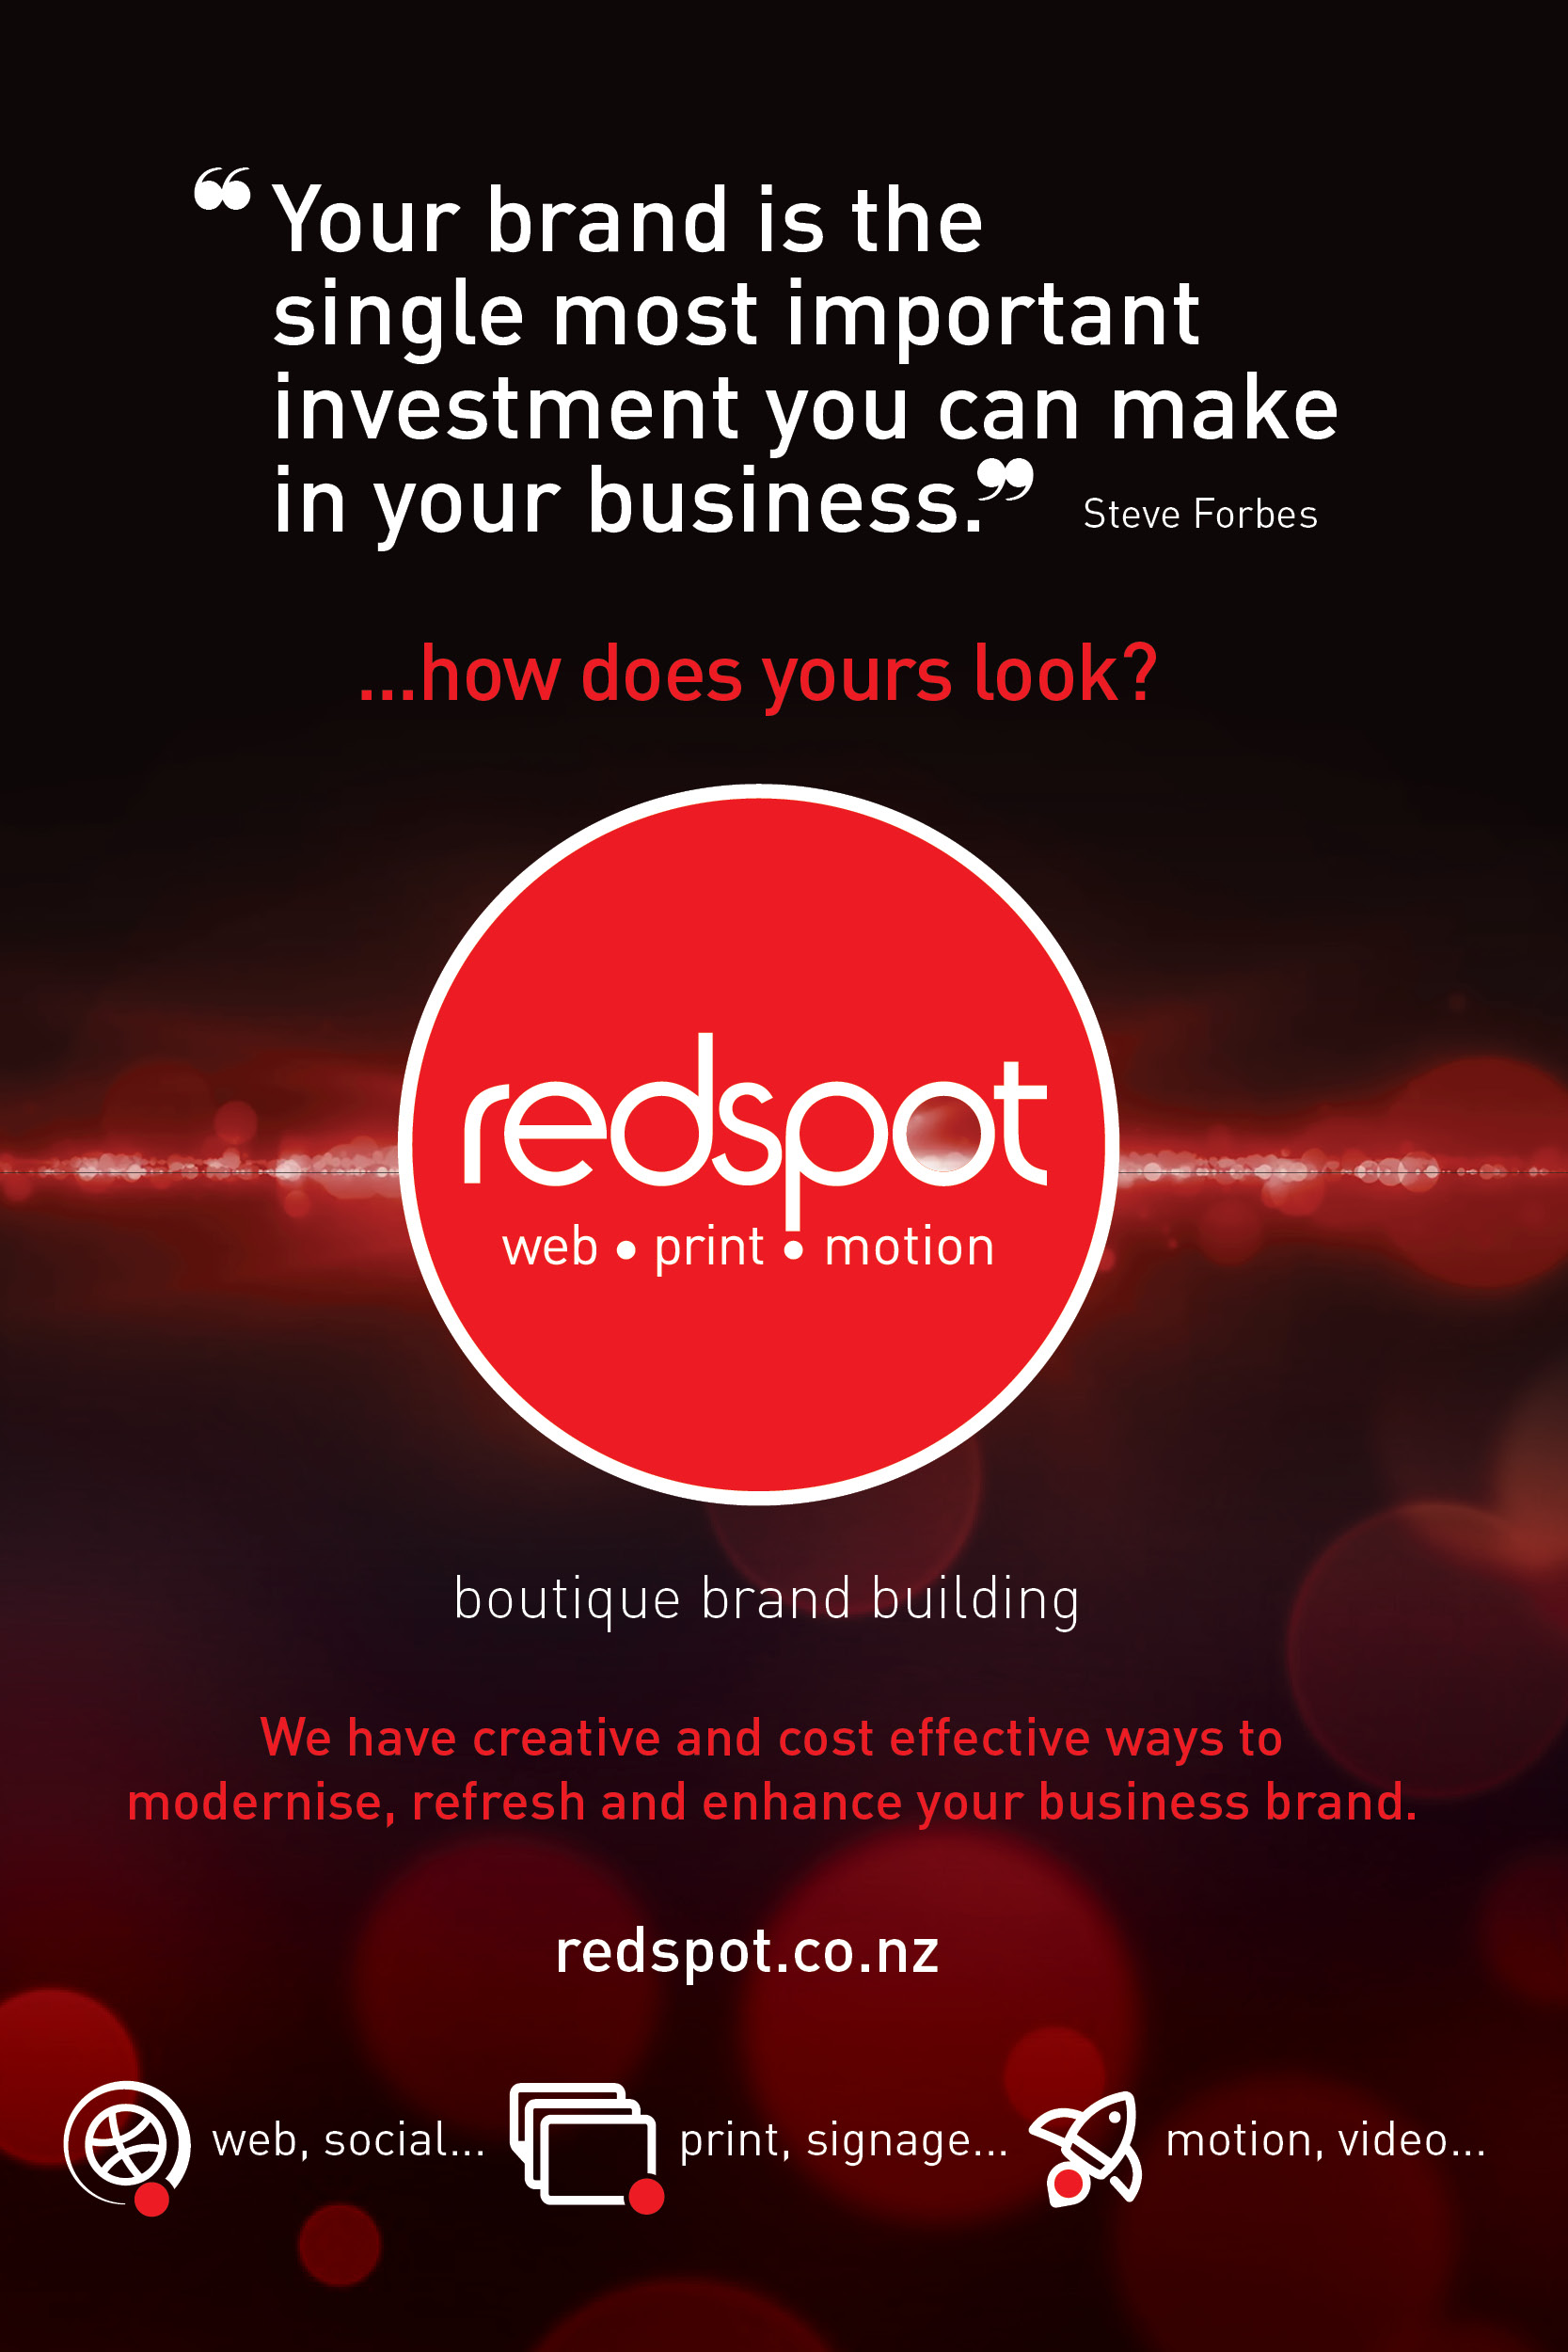 Redspot logo with red and white text